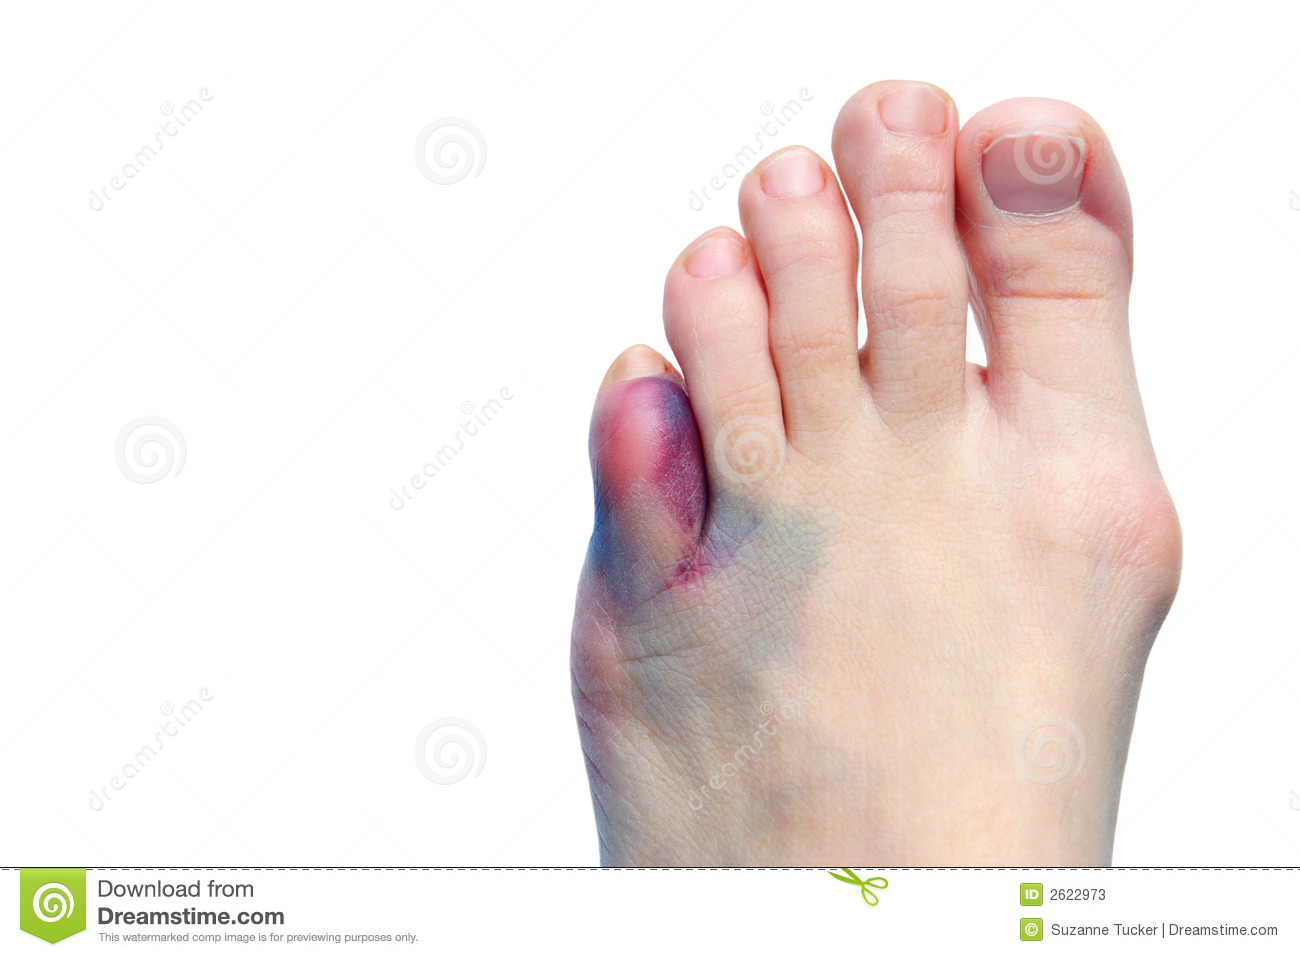 ... by the bone protruding abnormally outward near the ball of the foot